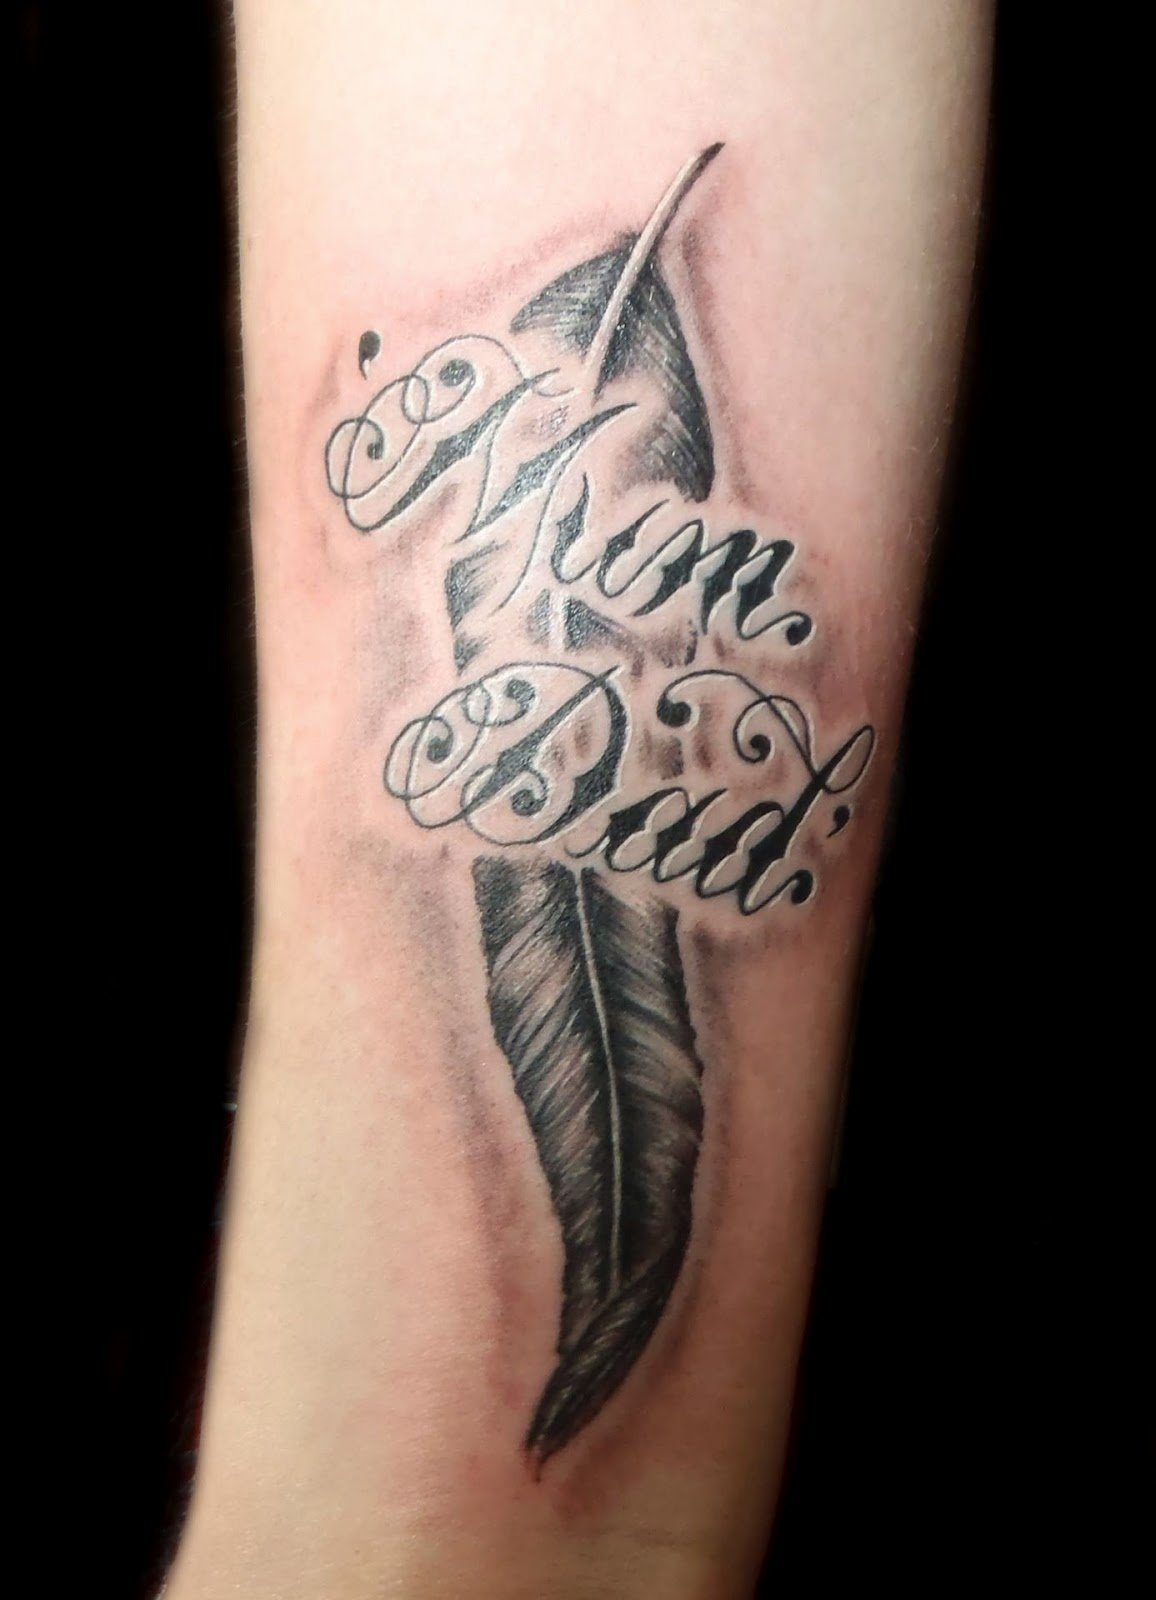 10 Lovable Mom And Dad Tattoo Ideas 65 incredible mom tattoos ideas 1